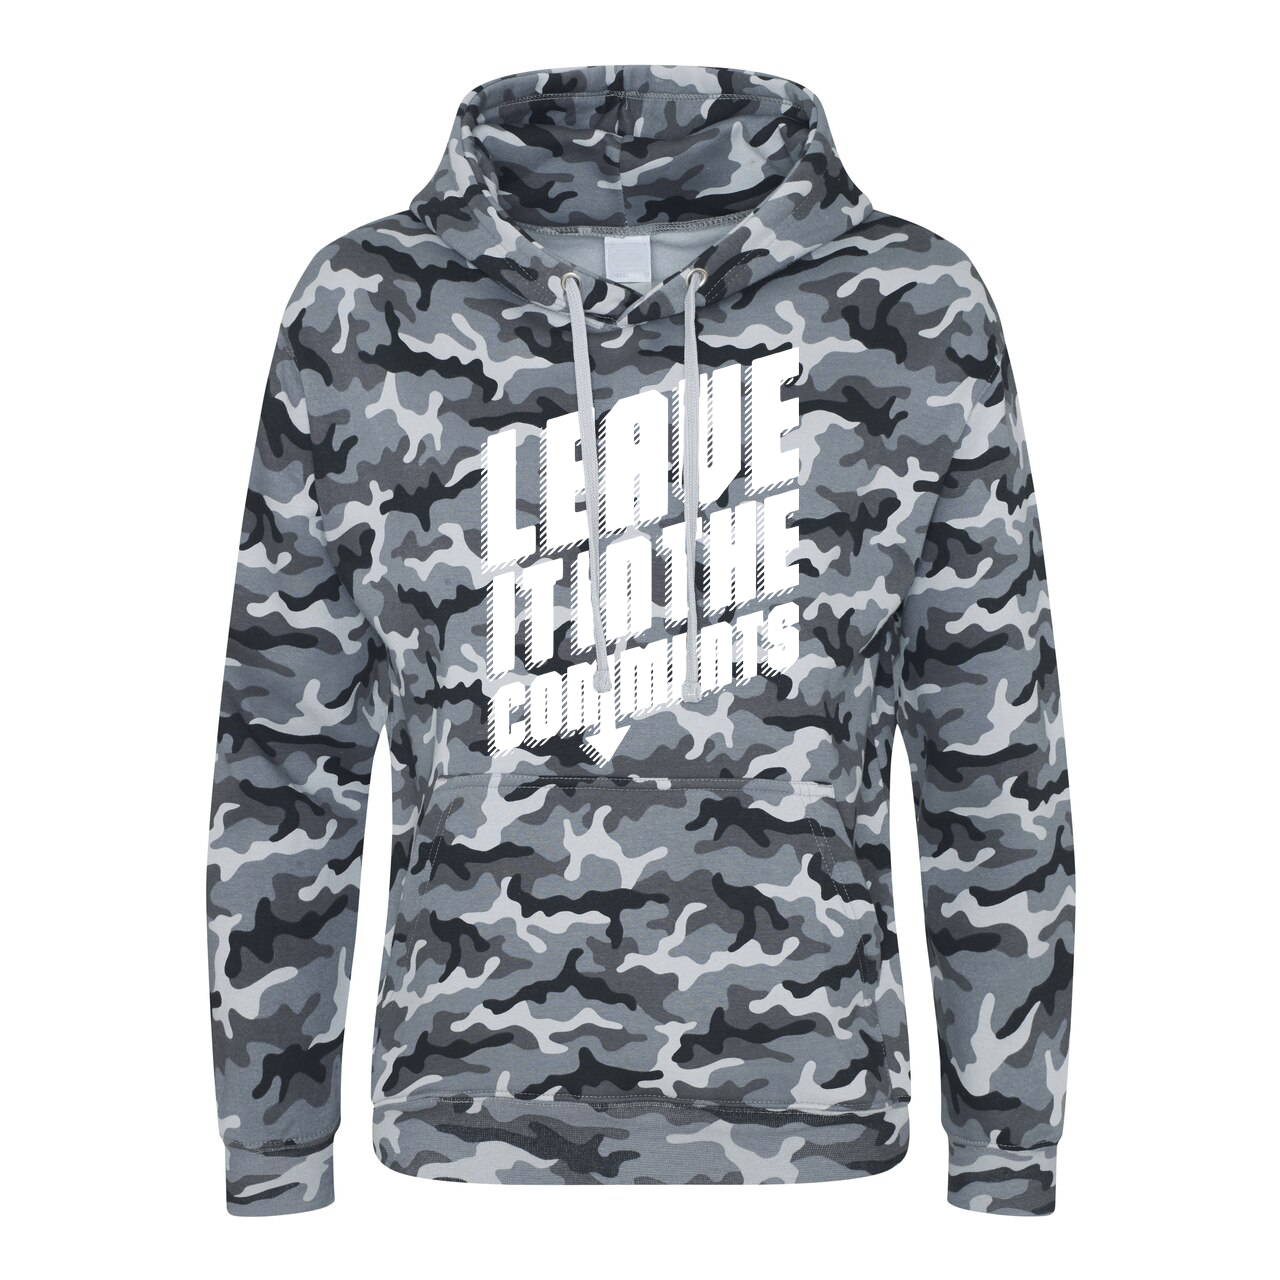 'Leave it in the Comments' Printed Hoodie (Various Colours)